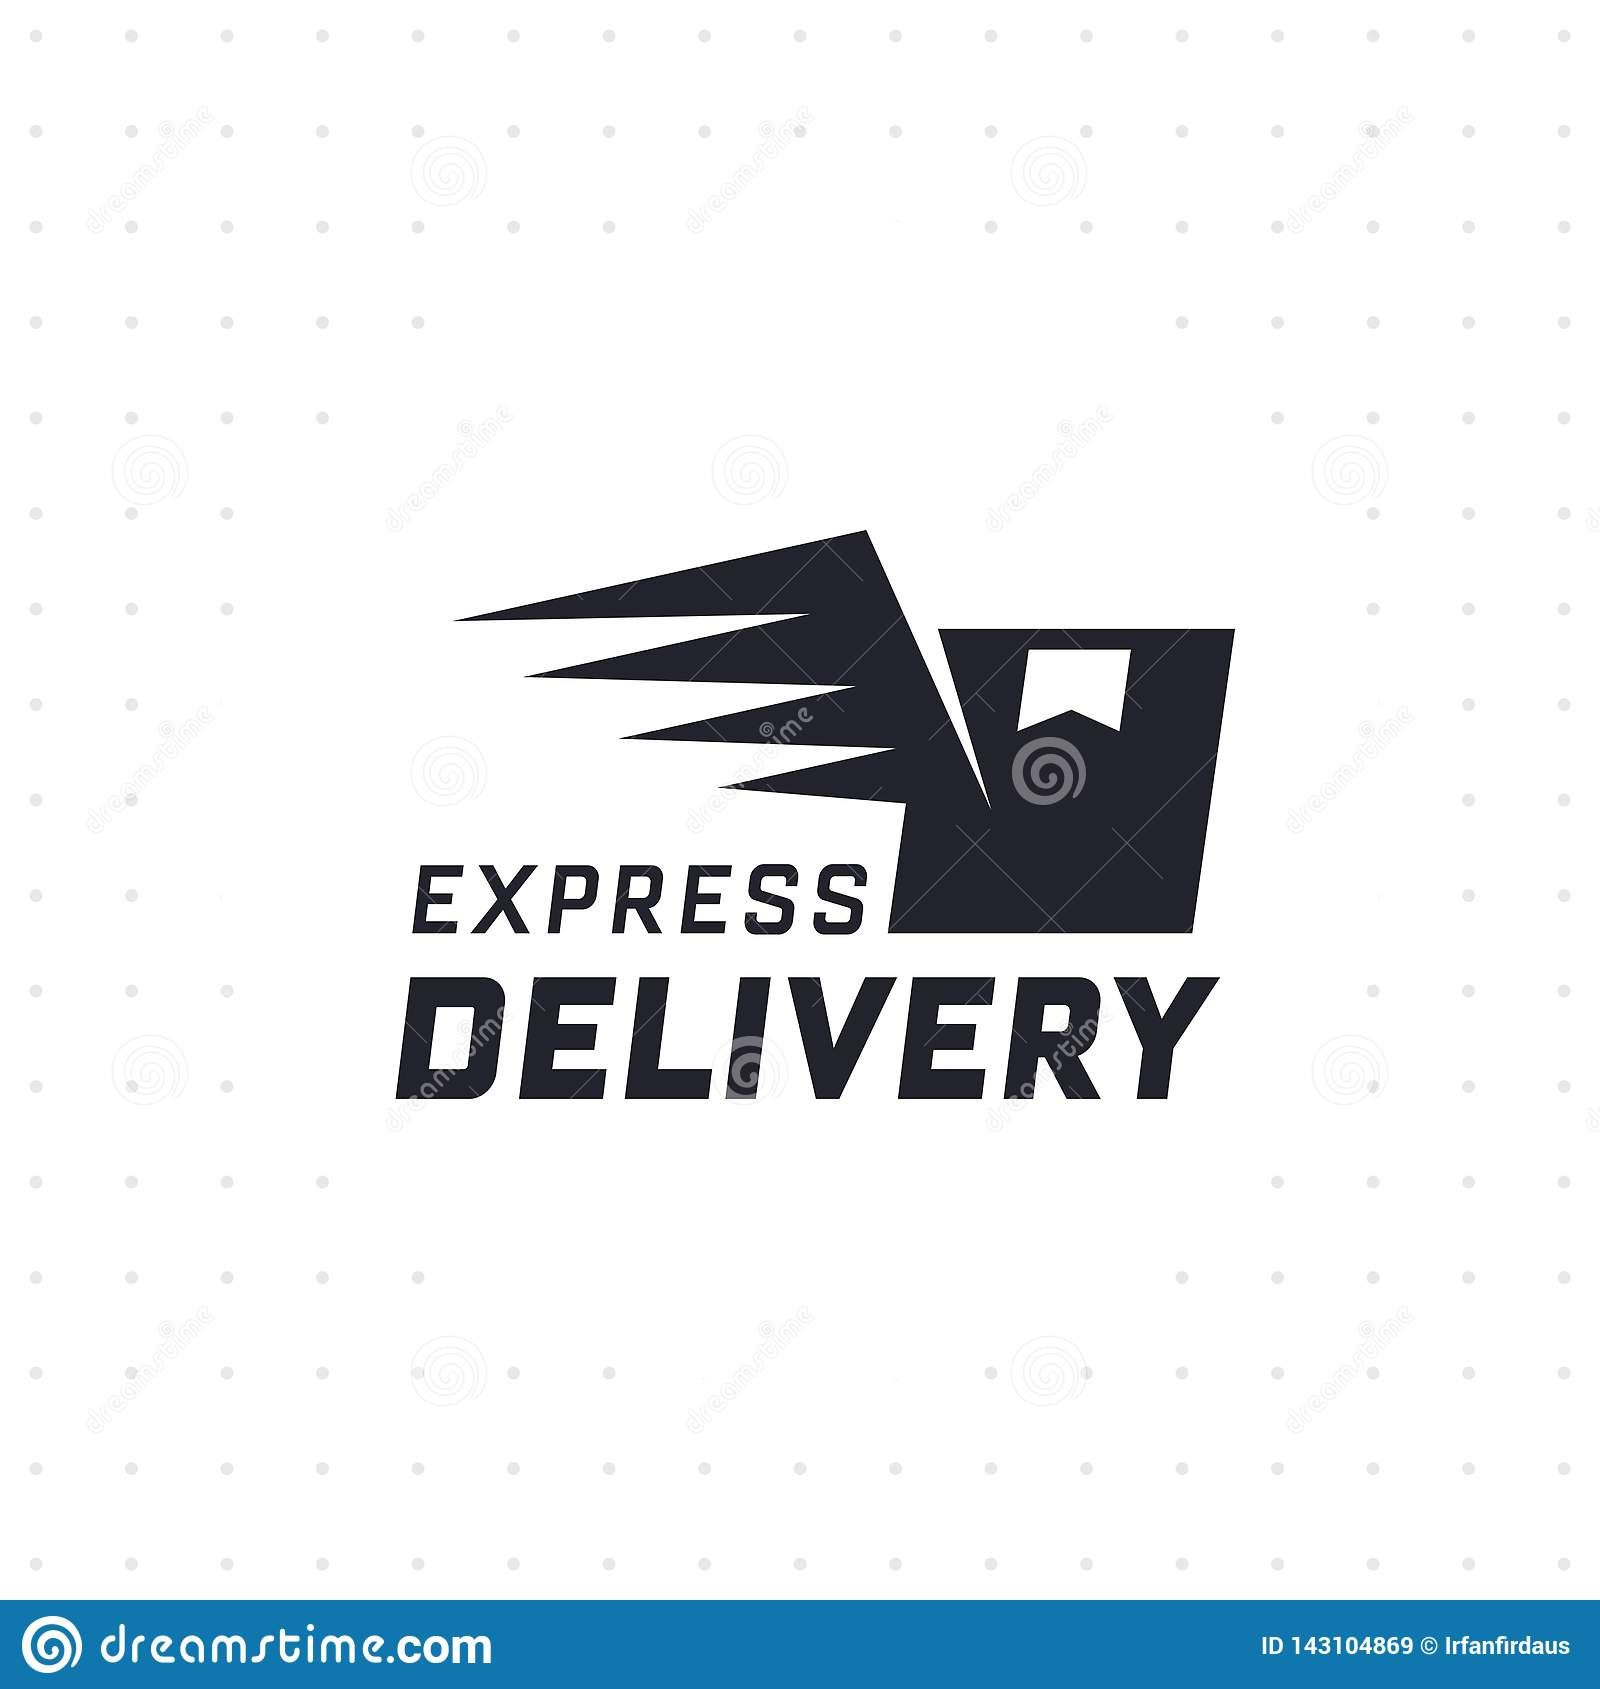 Express delivery stock vector  Illustration of free - 143104869